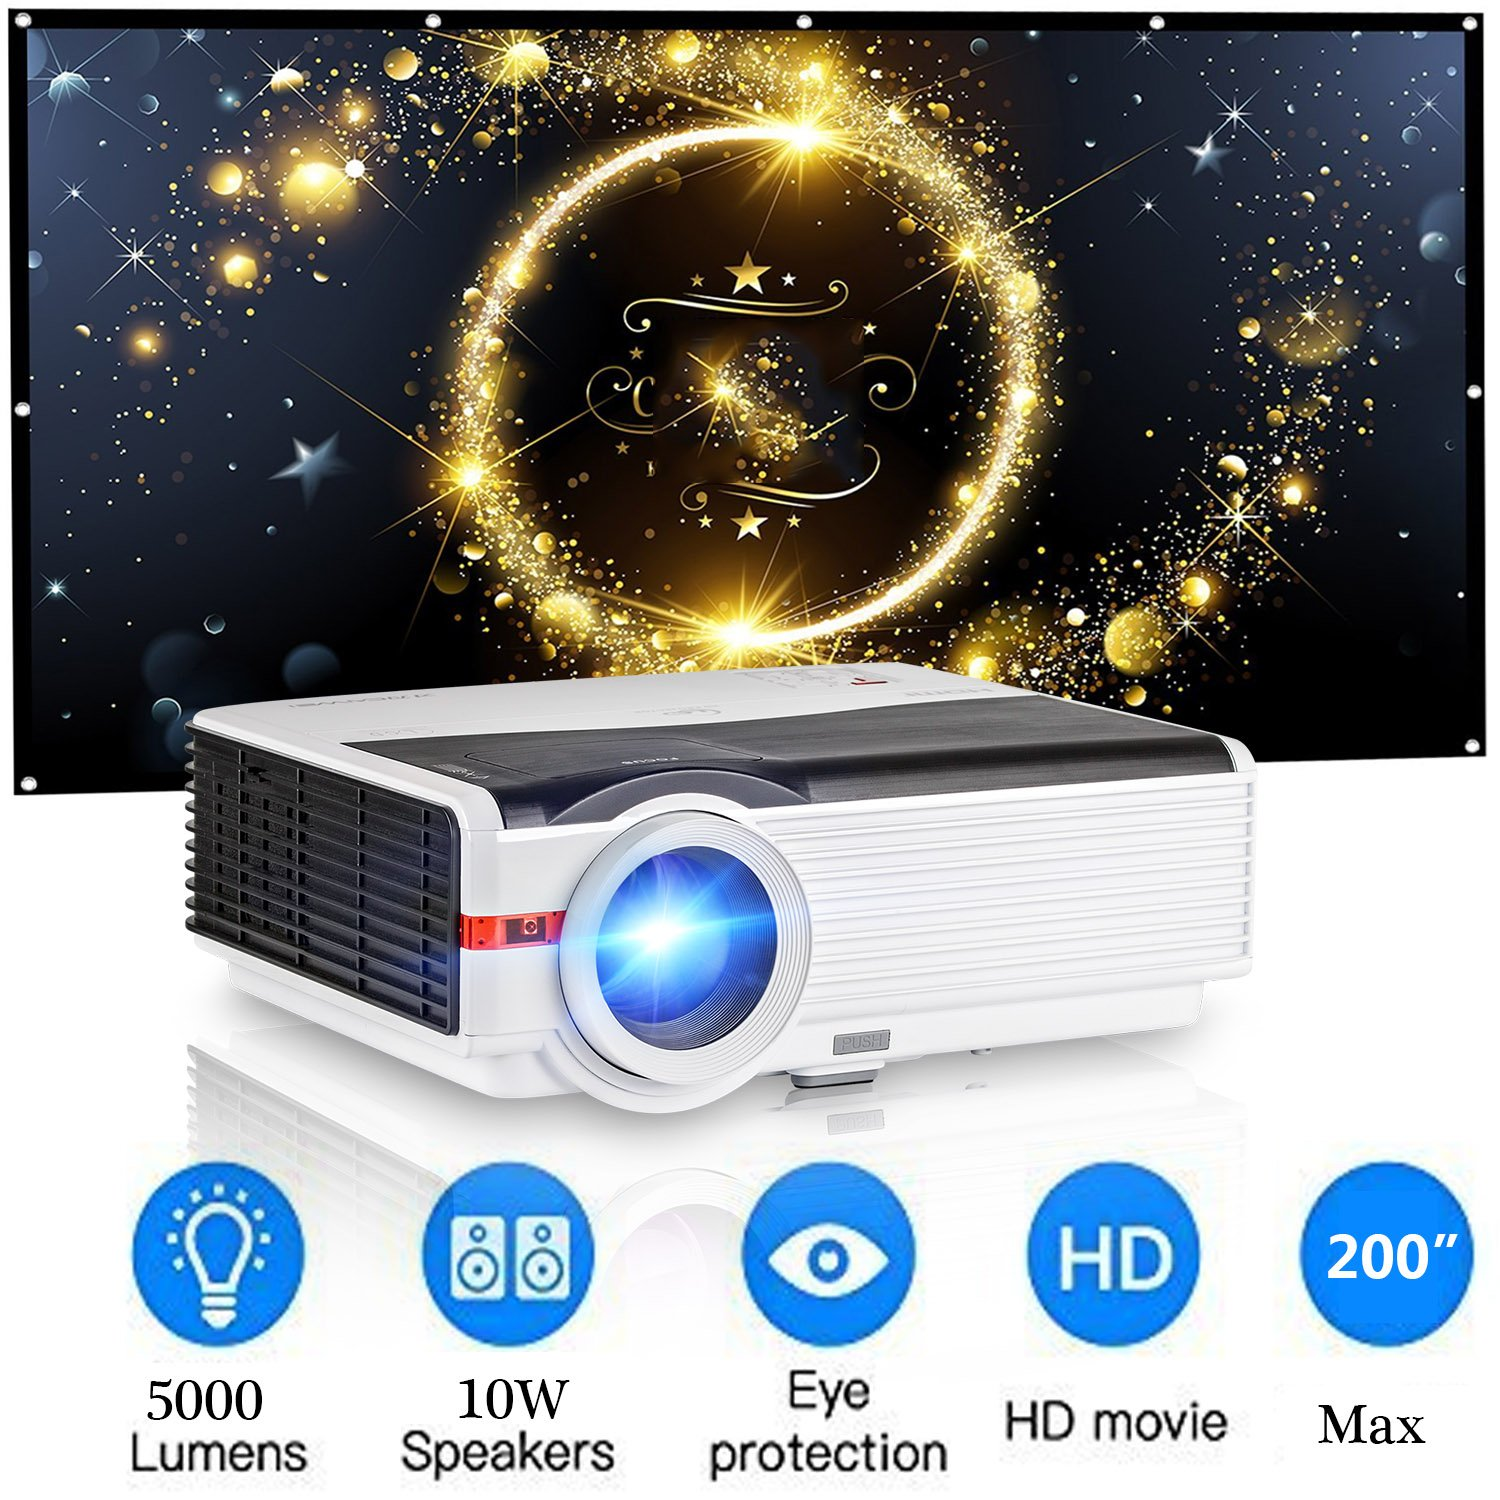 HD Projector 4200 Luminous Efficiency with 200'' Max Display 50,000-Hours Led Lamp Life, Mobile Portable Home Theater Projector Support 1080p HDMI, Movie Gaming TV Projector for Phone DVD Player USB